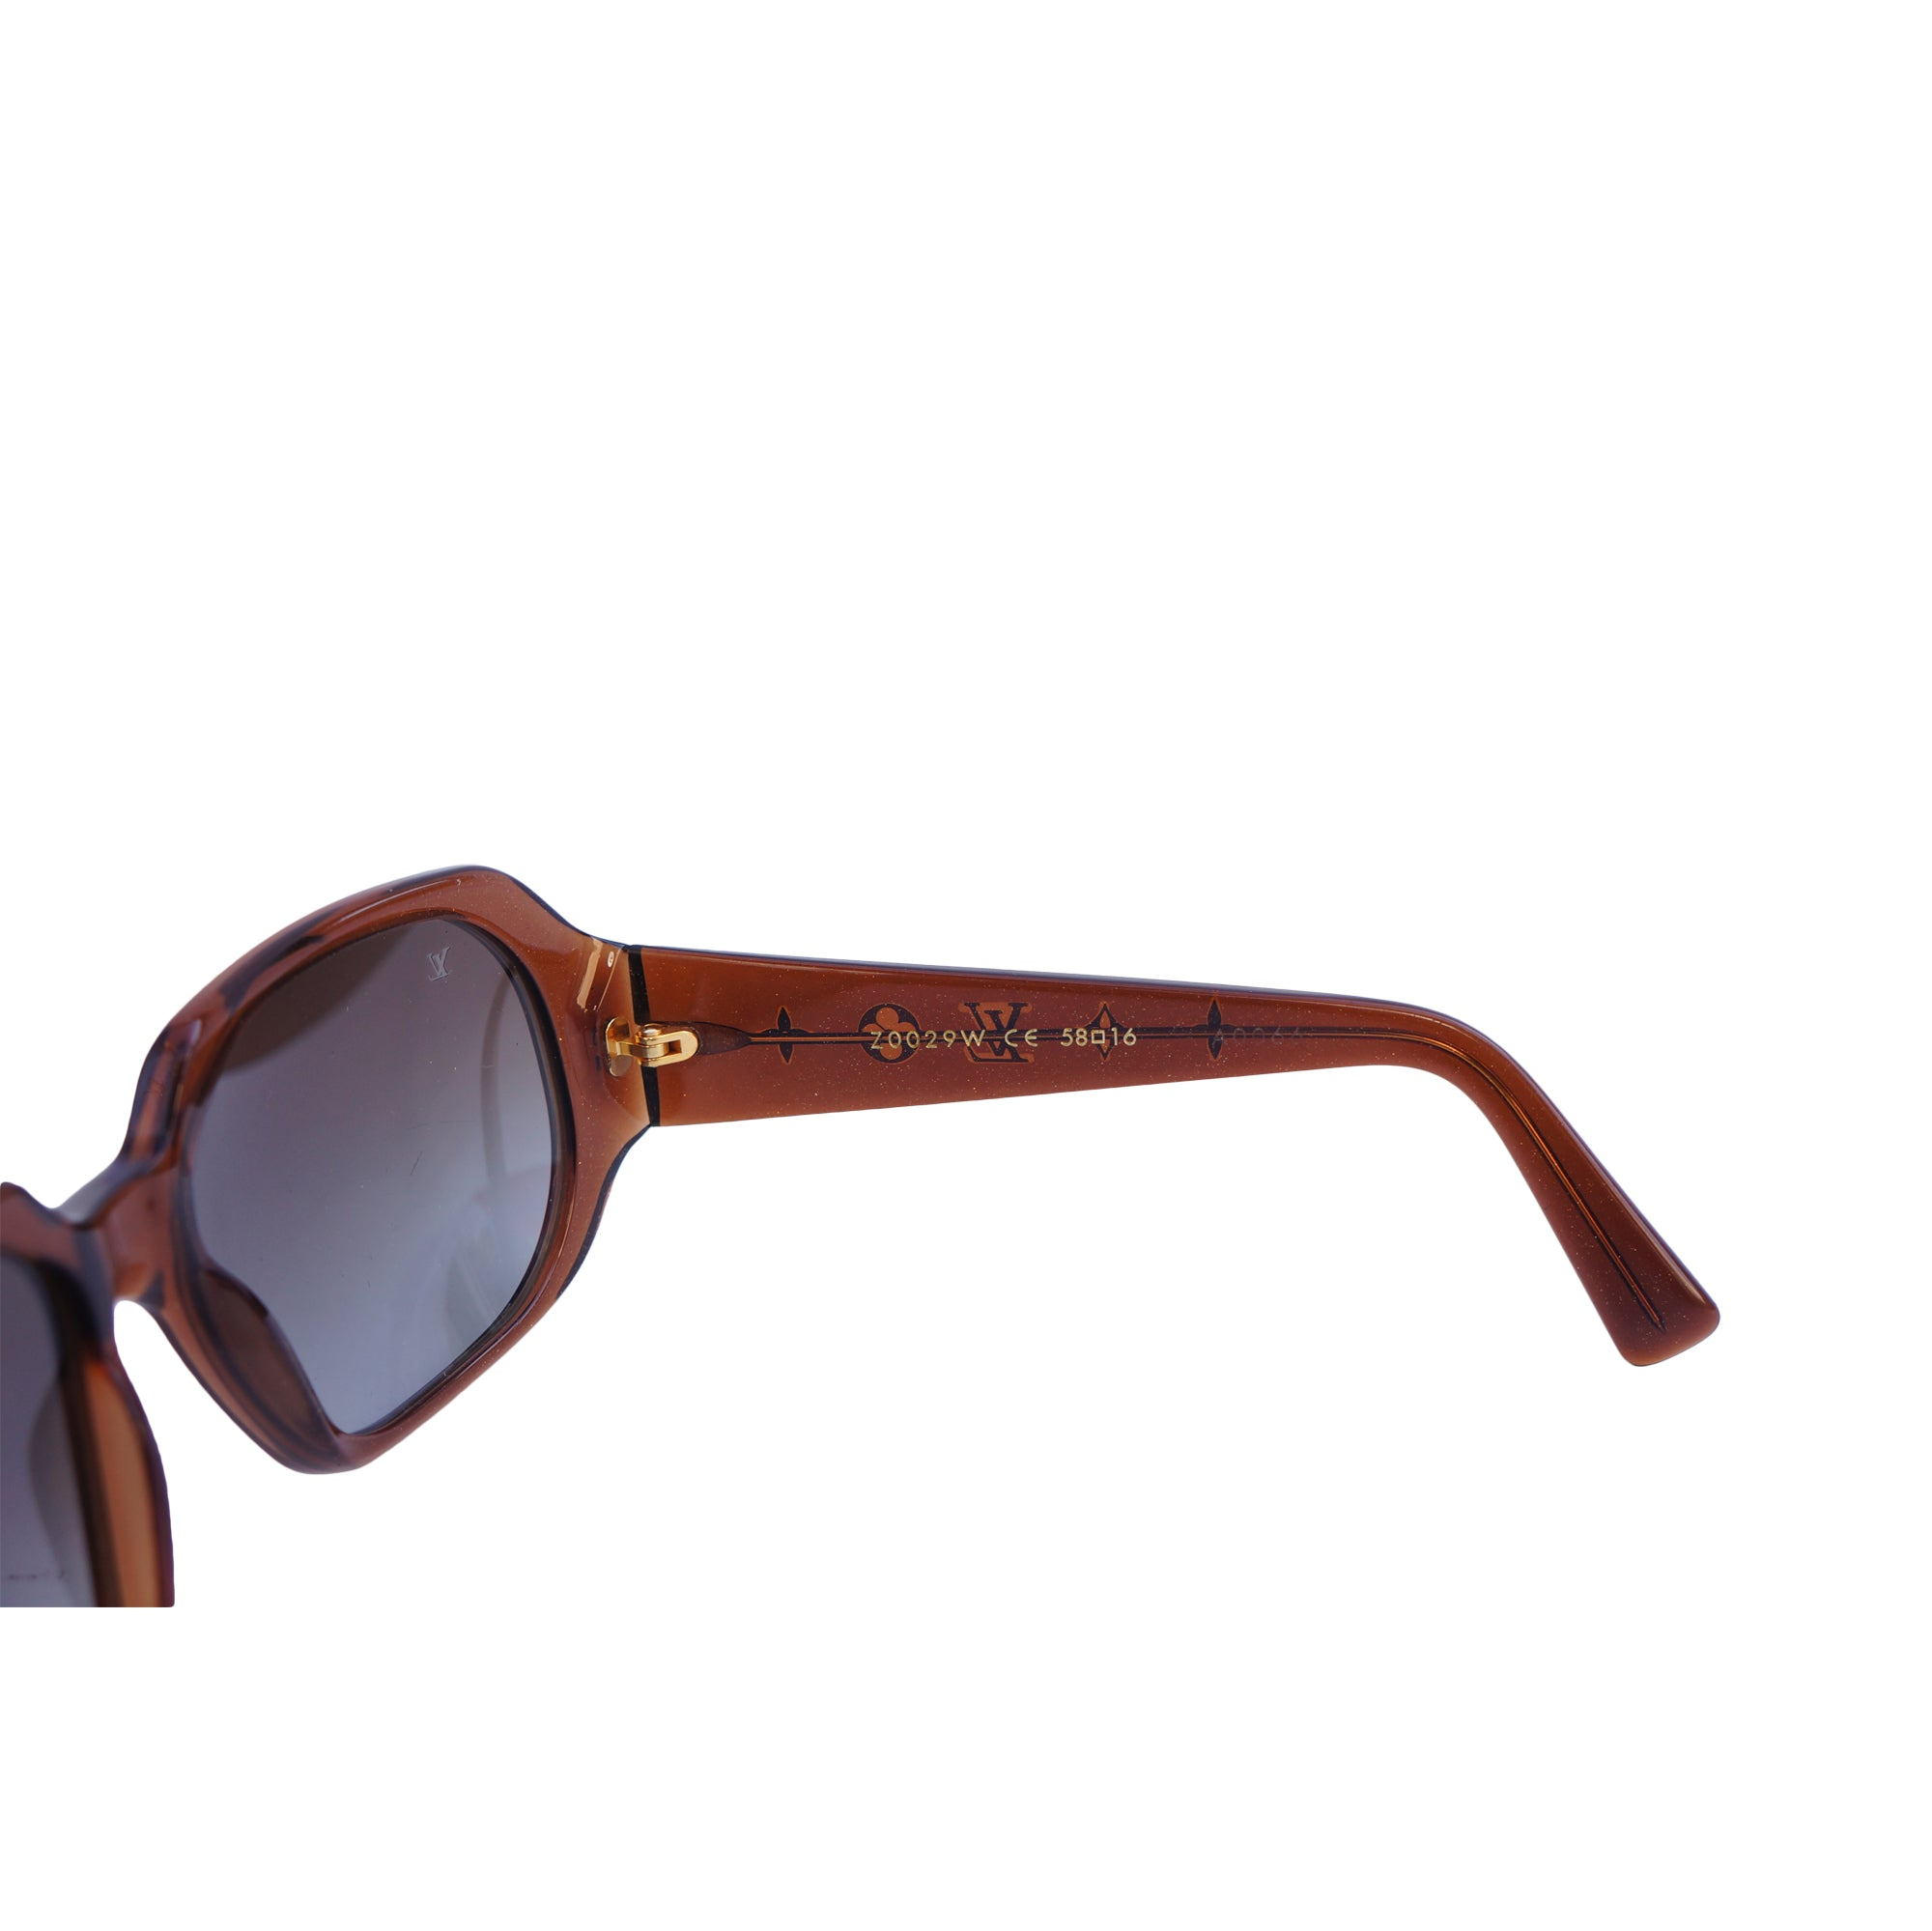 7464893a05 ... LOUIS VUITTON OBSESSION CARRÉ SUNGLASSES Shop online the best value on authentic  designer used preowned consignment ...